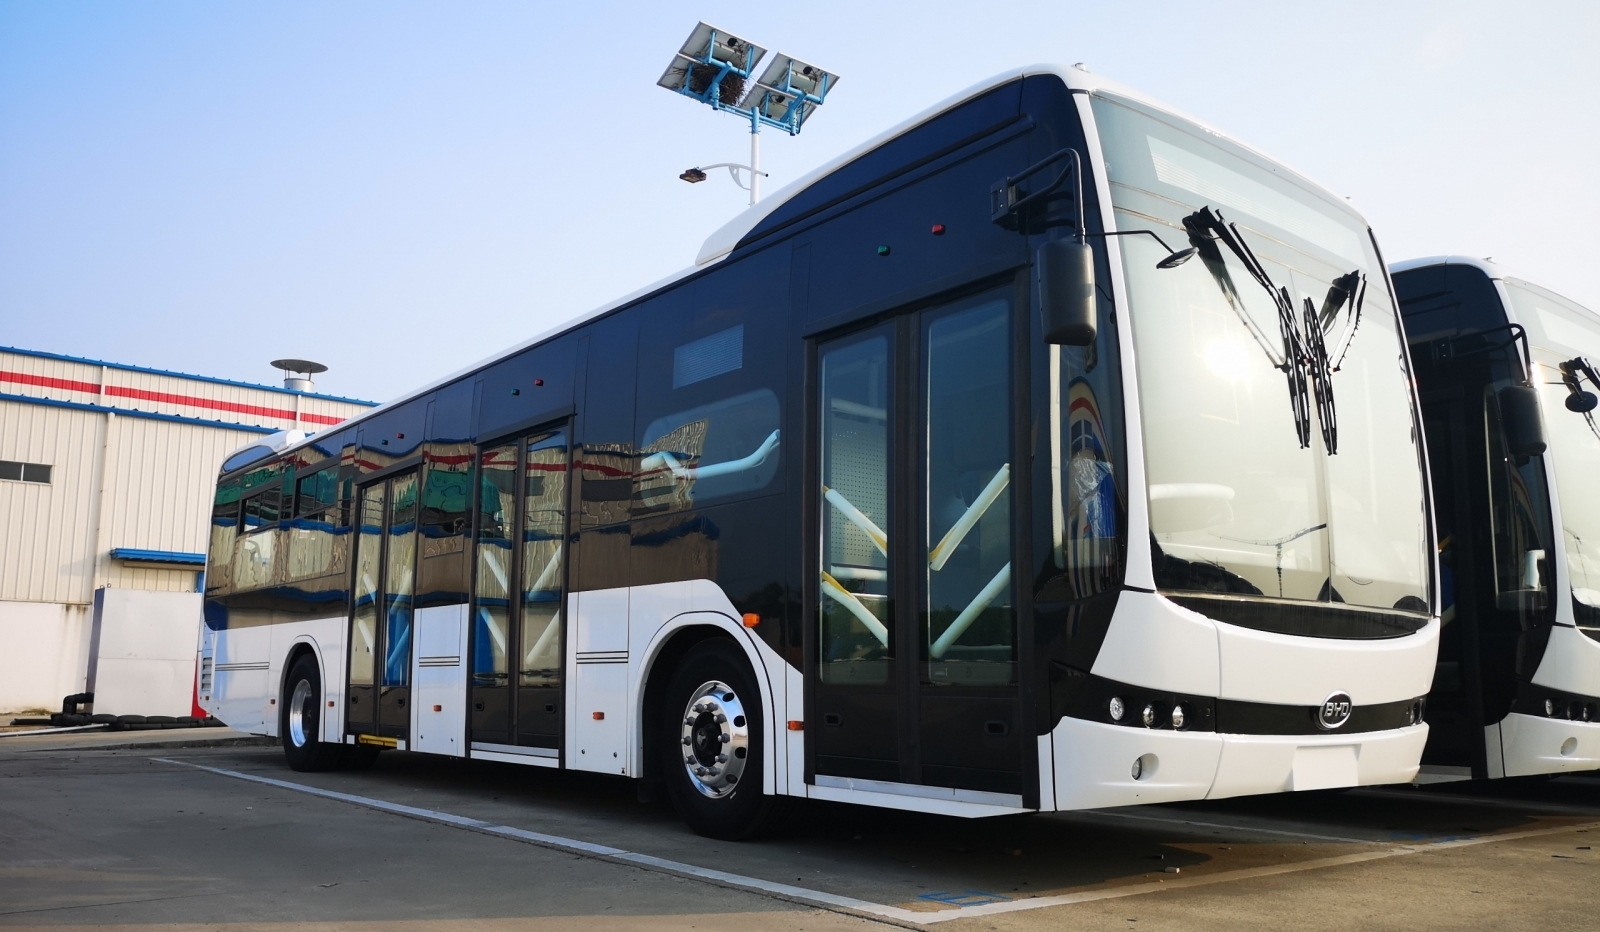 Bogot turns electric with BYD. 379 electric buses to hit the road - Sustainable Bus